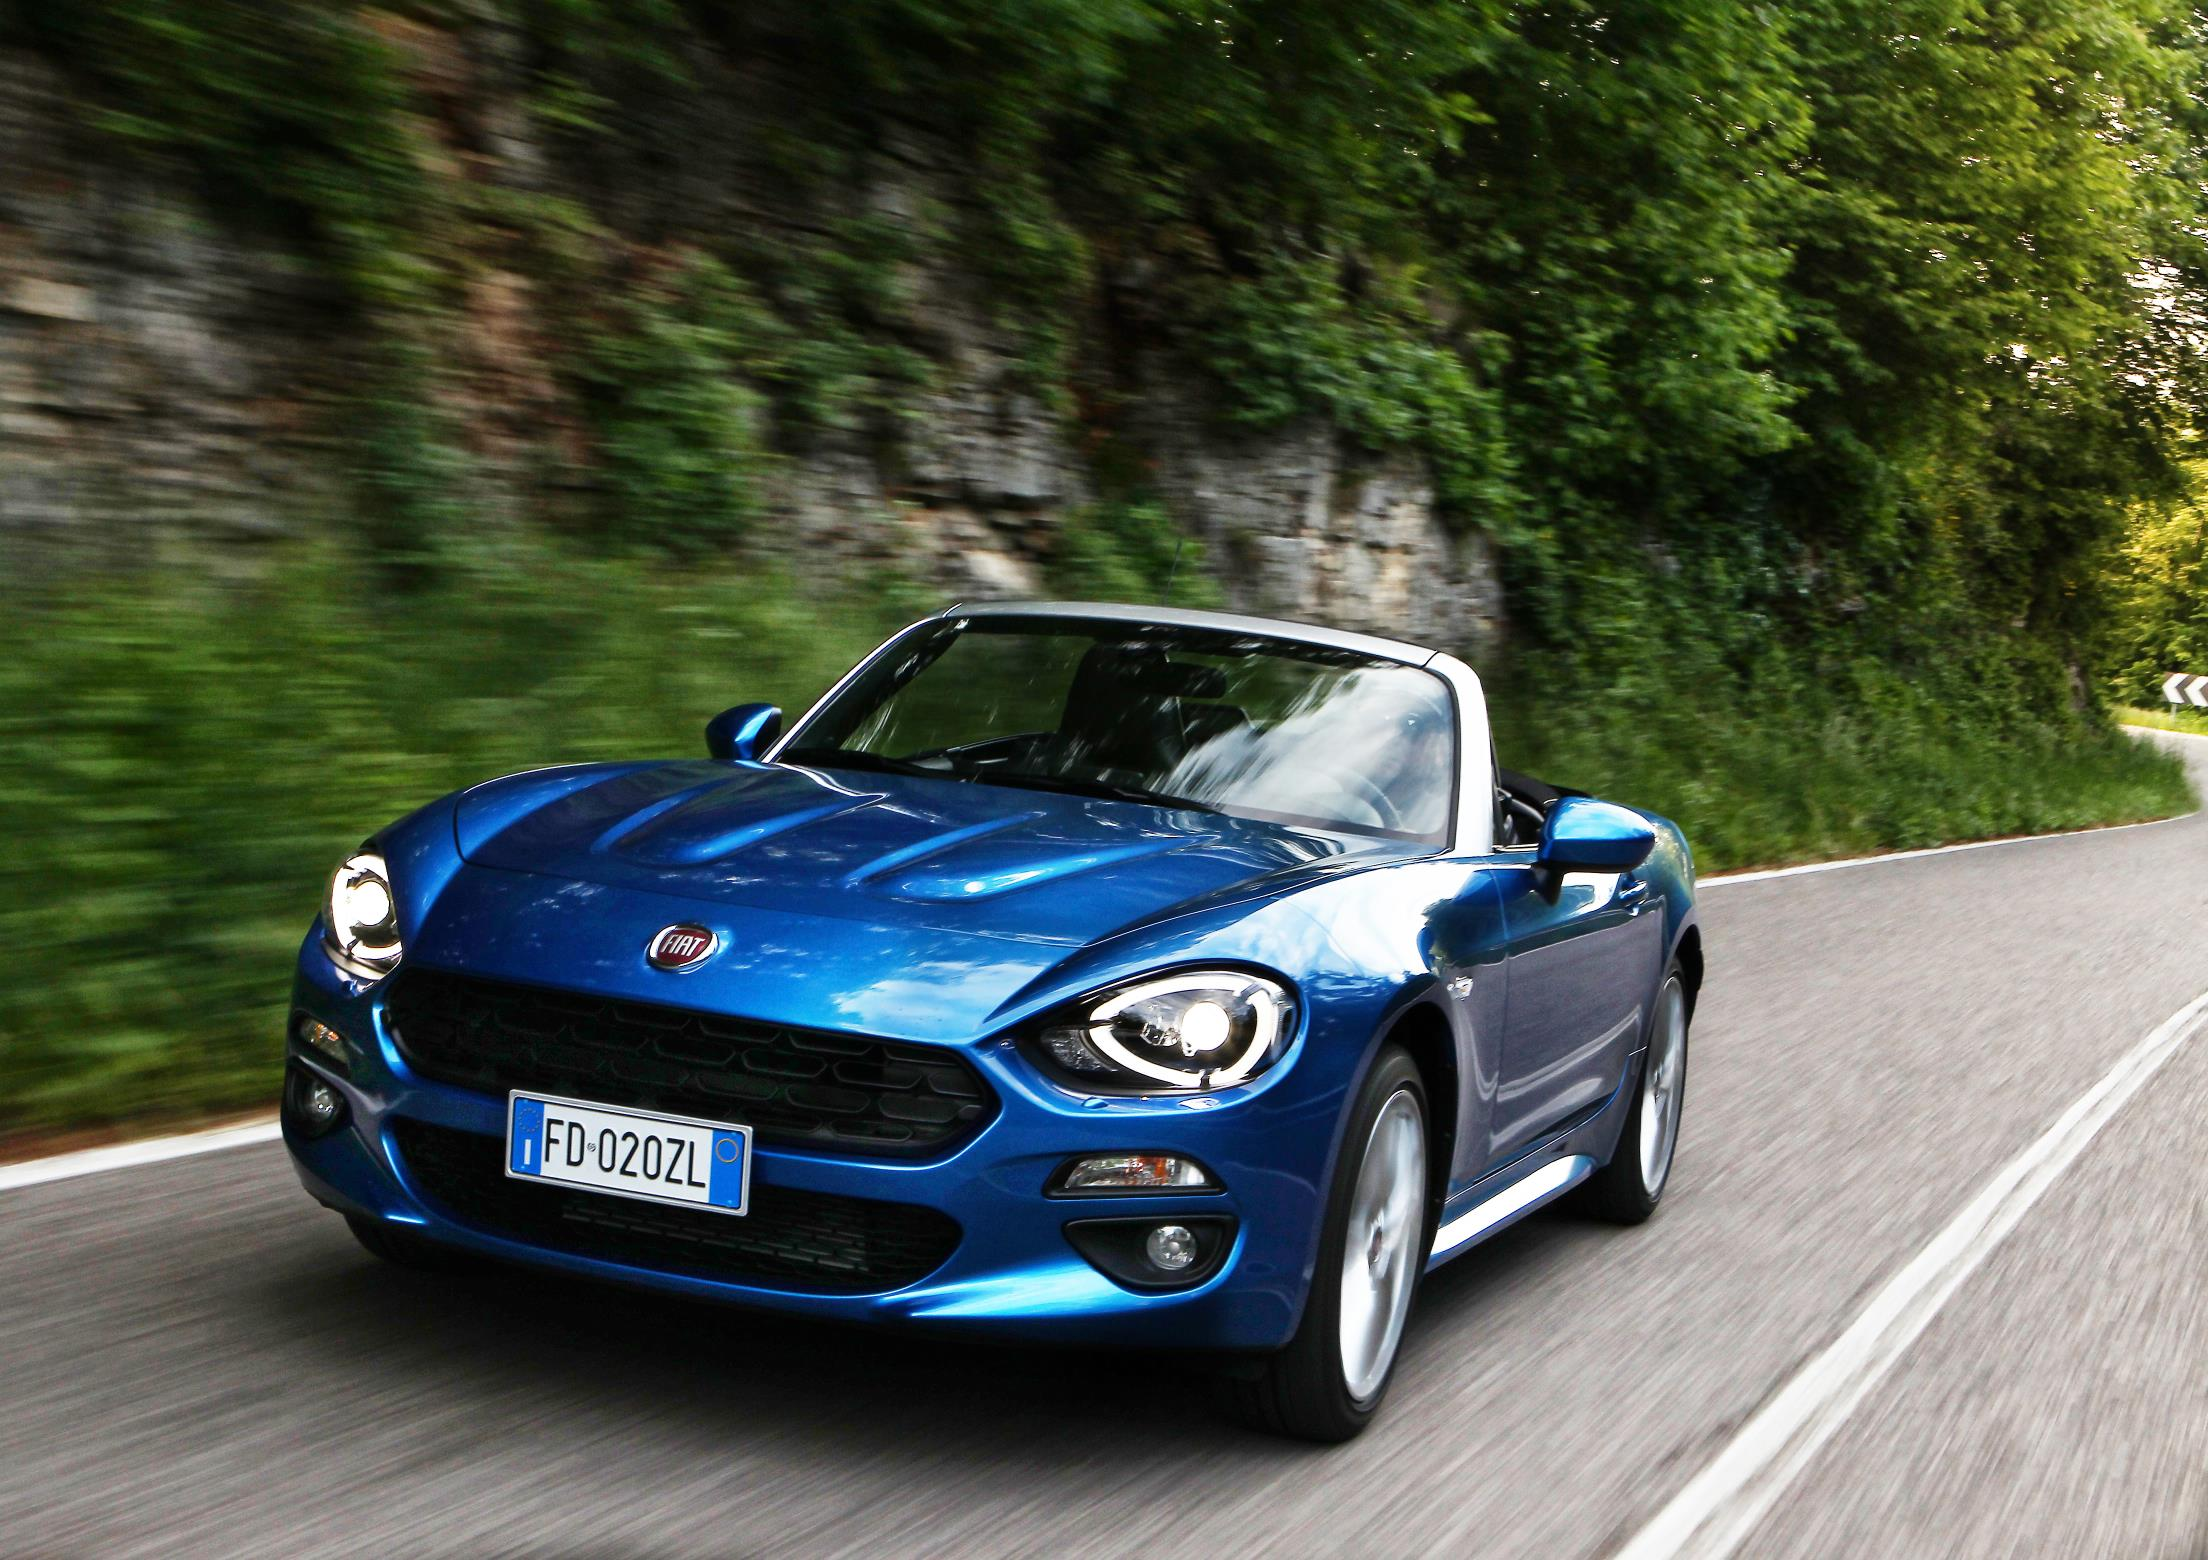 2019 Fiat 124 Spider Abarth Teased On Video, Turbo Engine Sounds ...